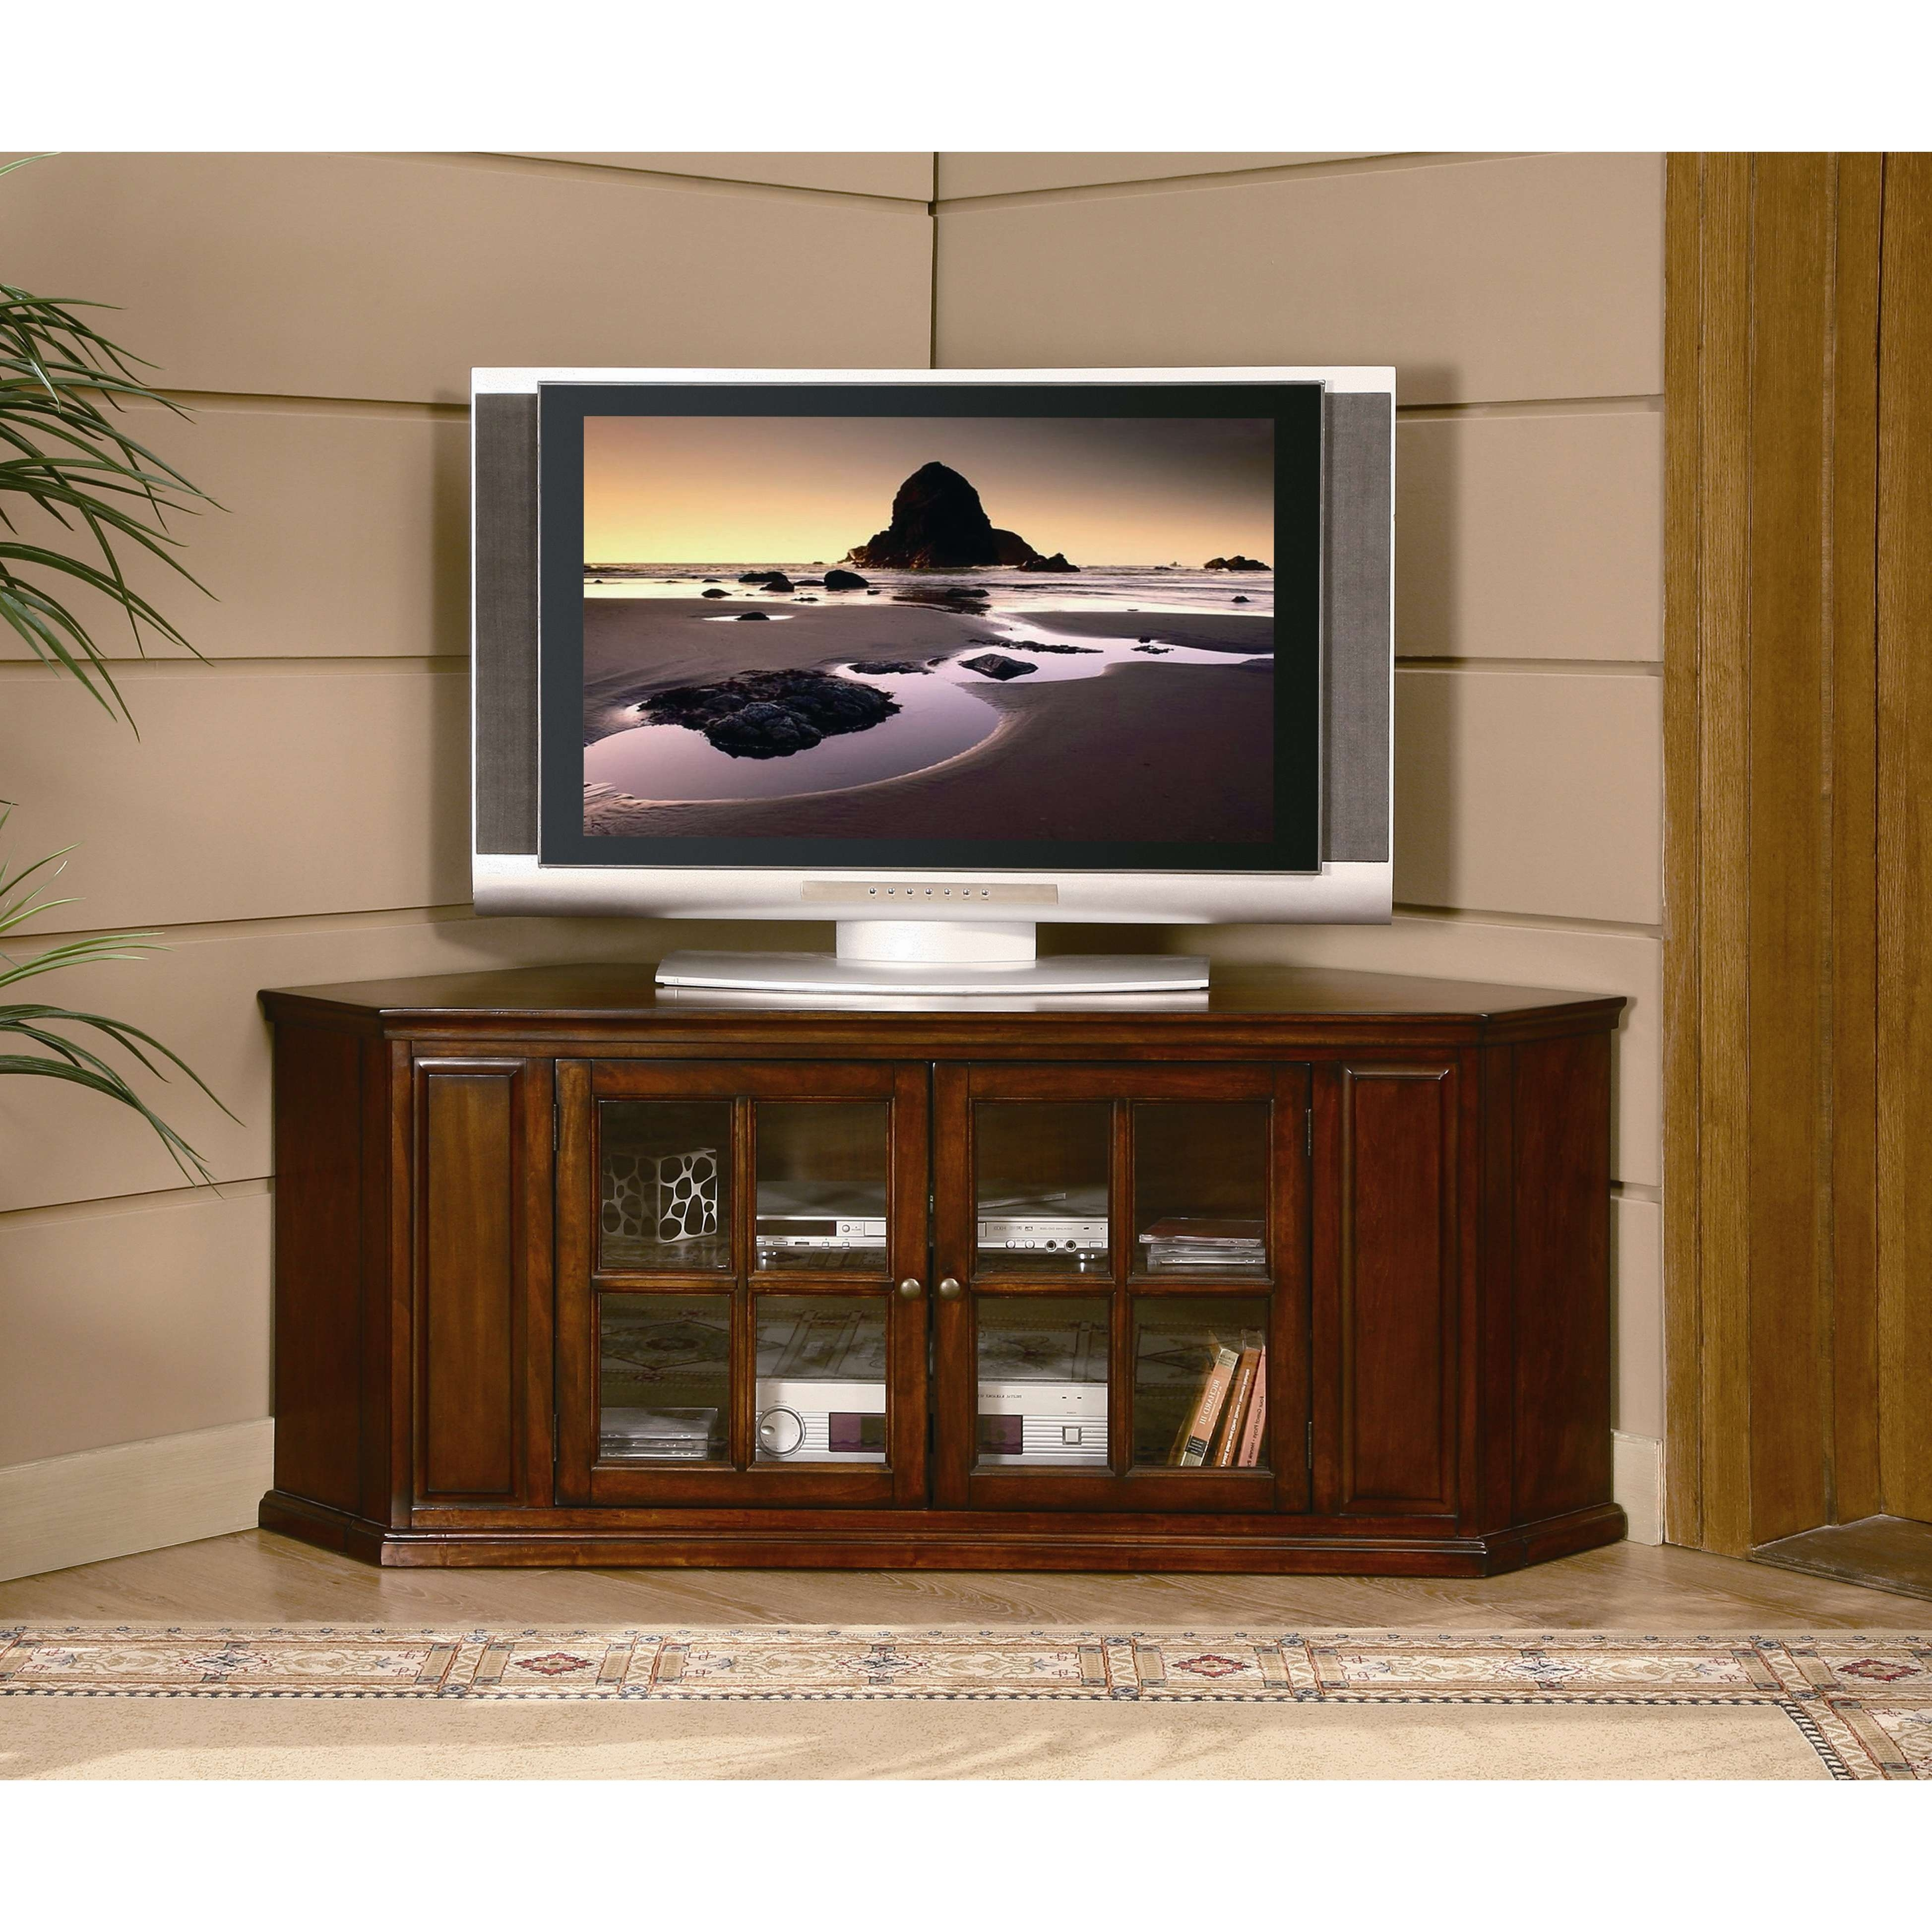 Stand – Furniture Depot Regarding Corner Tv Stands For 55 Inch Tv (View 4 of 15)